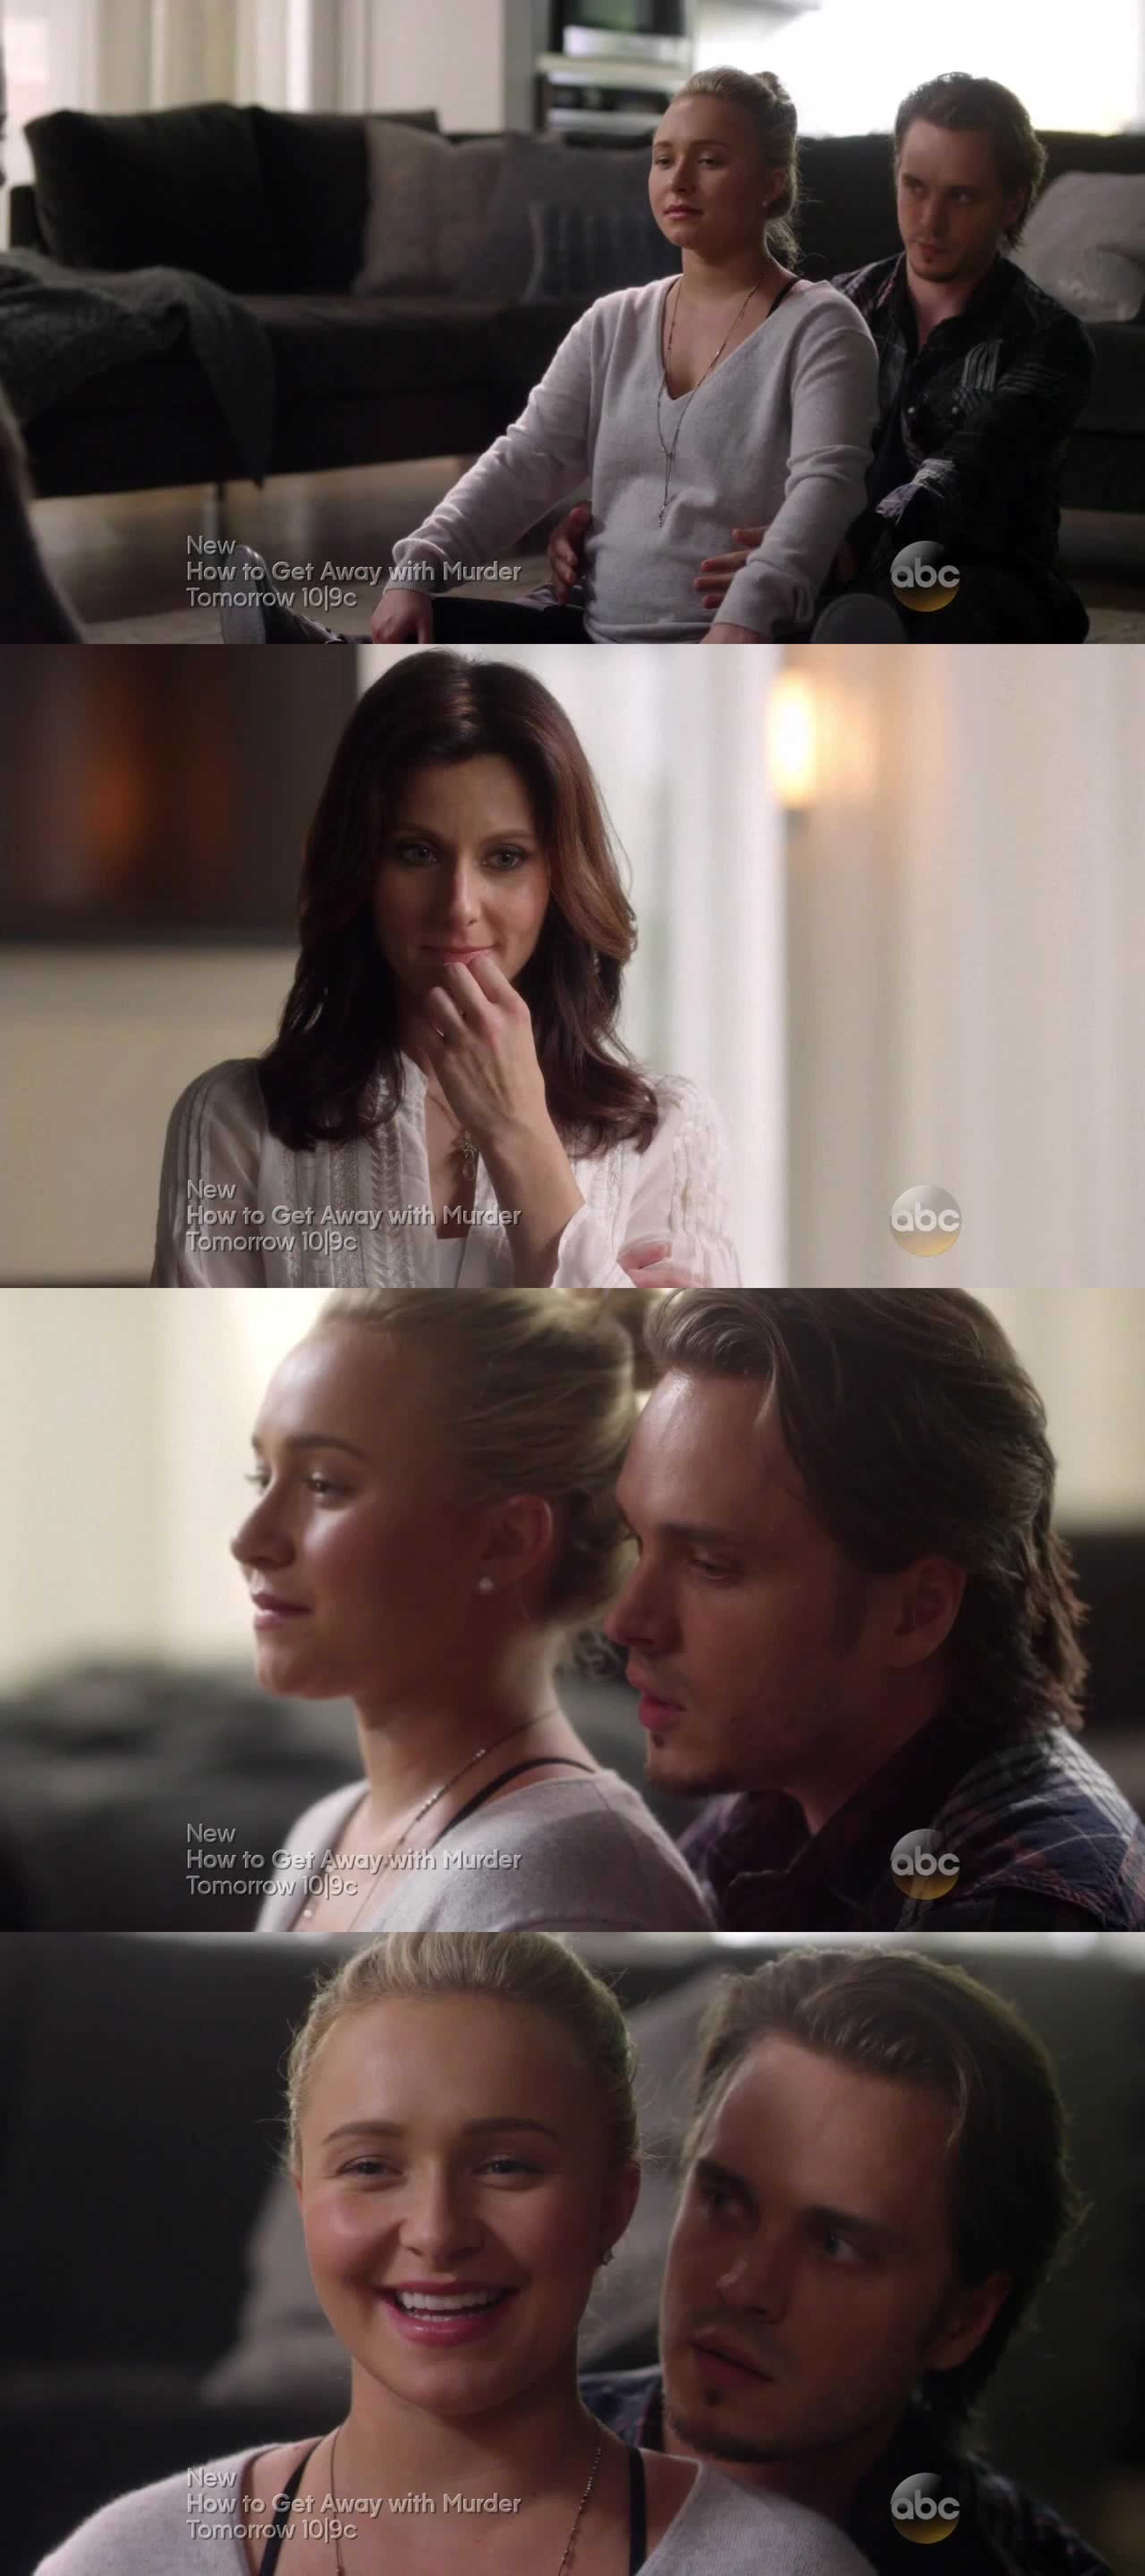 I hope they'll reconciliate, this situation makes both of them so unhappy!  Poor Will and Layla haha, reality TV's a bitch! first time I was impressed by Layla singing though, she's always been a so-so character.  Curious how Deacon will take the story about him and Rayna that Rolling Stone no doubt is gonna print. don't like the Maddie and Luke's son (what's-his-name) storyline, hope they'll break it off after this incident   And we'll have to wait and see if Gunnar and Zoey's relationship can handle fulltime care of Micah. (by the way, what mother just runs off like that, she's deeply disturbed..)